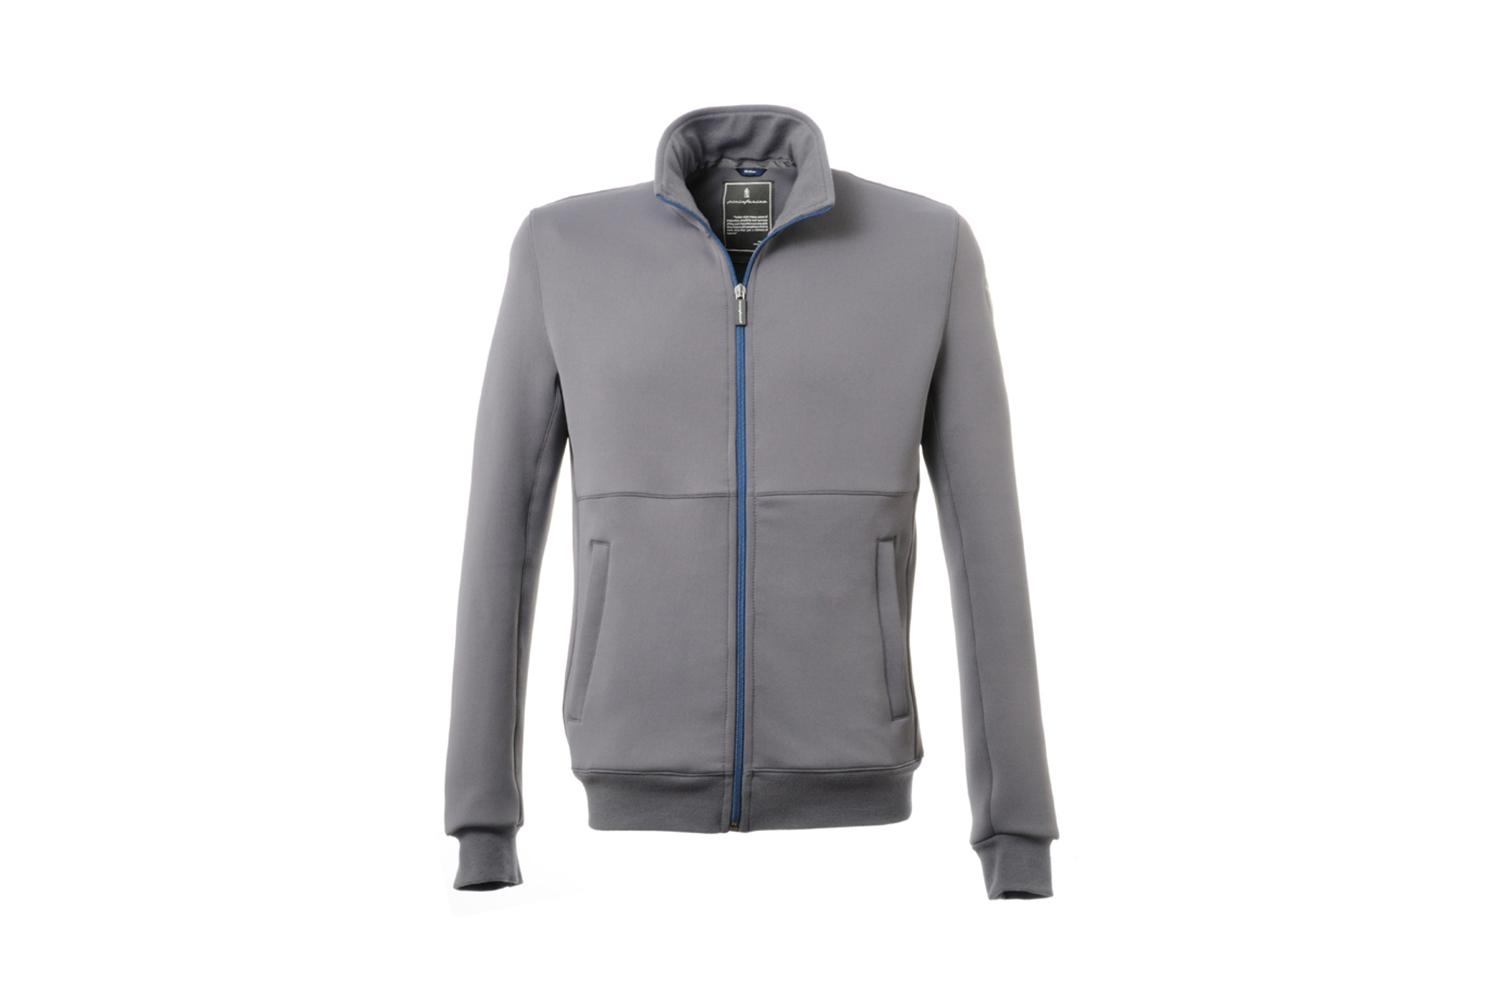 Full Zip Technical Sweatshirt Cambiano Collection Grey